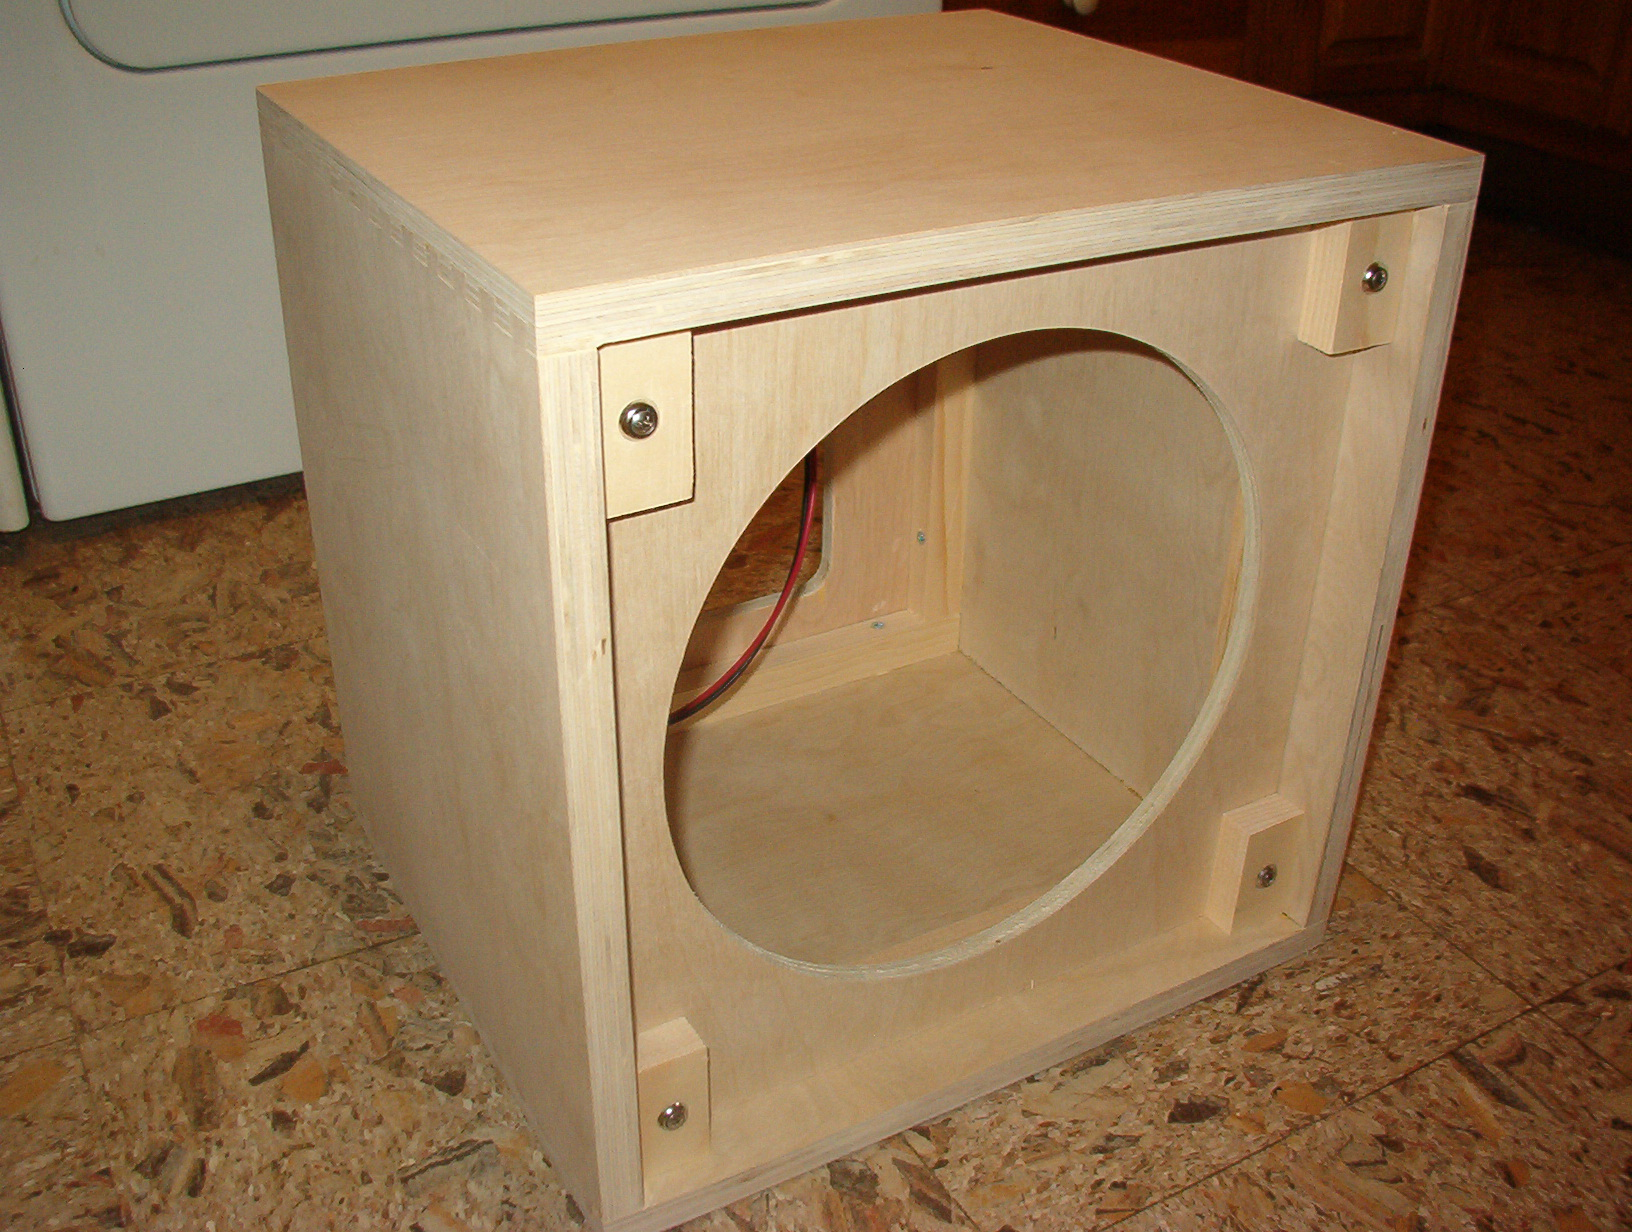 Speaker Cabinet Design Plans Veterinariancolleges